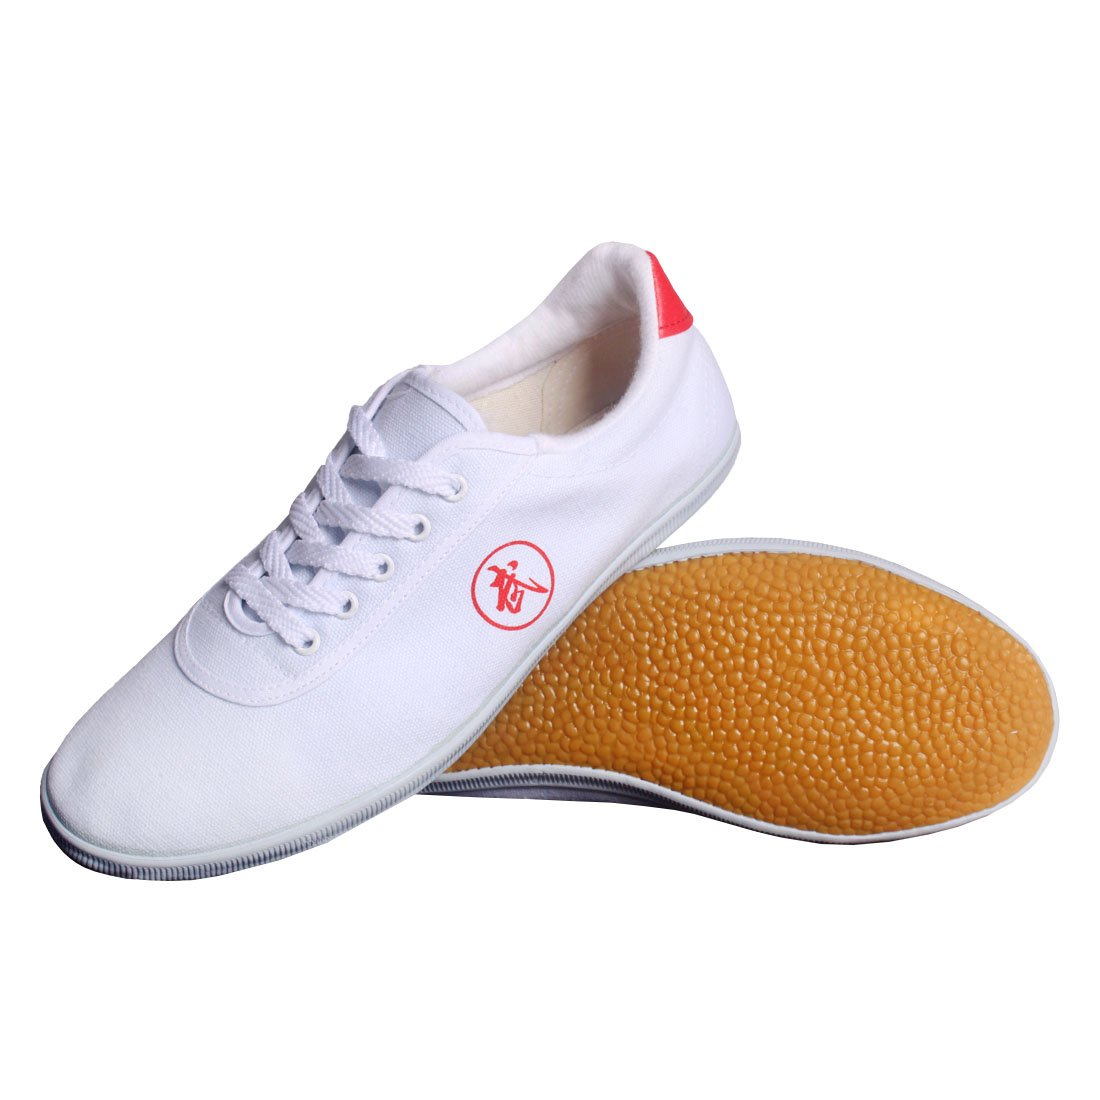 Andux artes marcial Kung Fu Tai Chi zapatos de Dichotomanthes Sole Old Beijing Unisex Zapatos TJX-01 Blanco